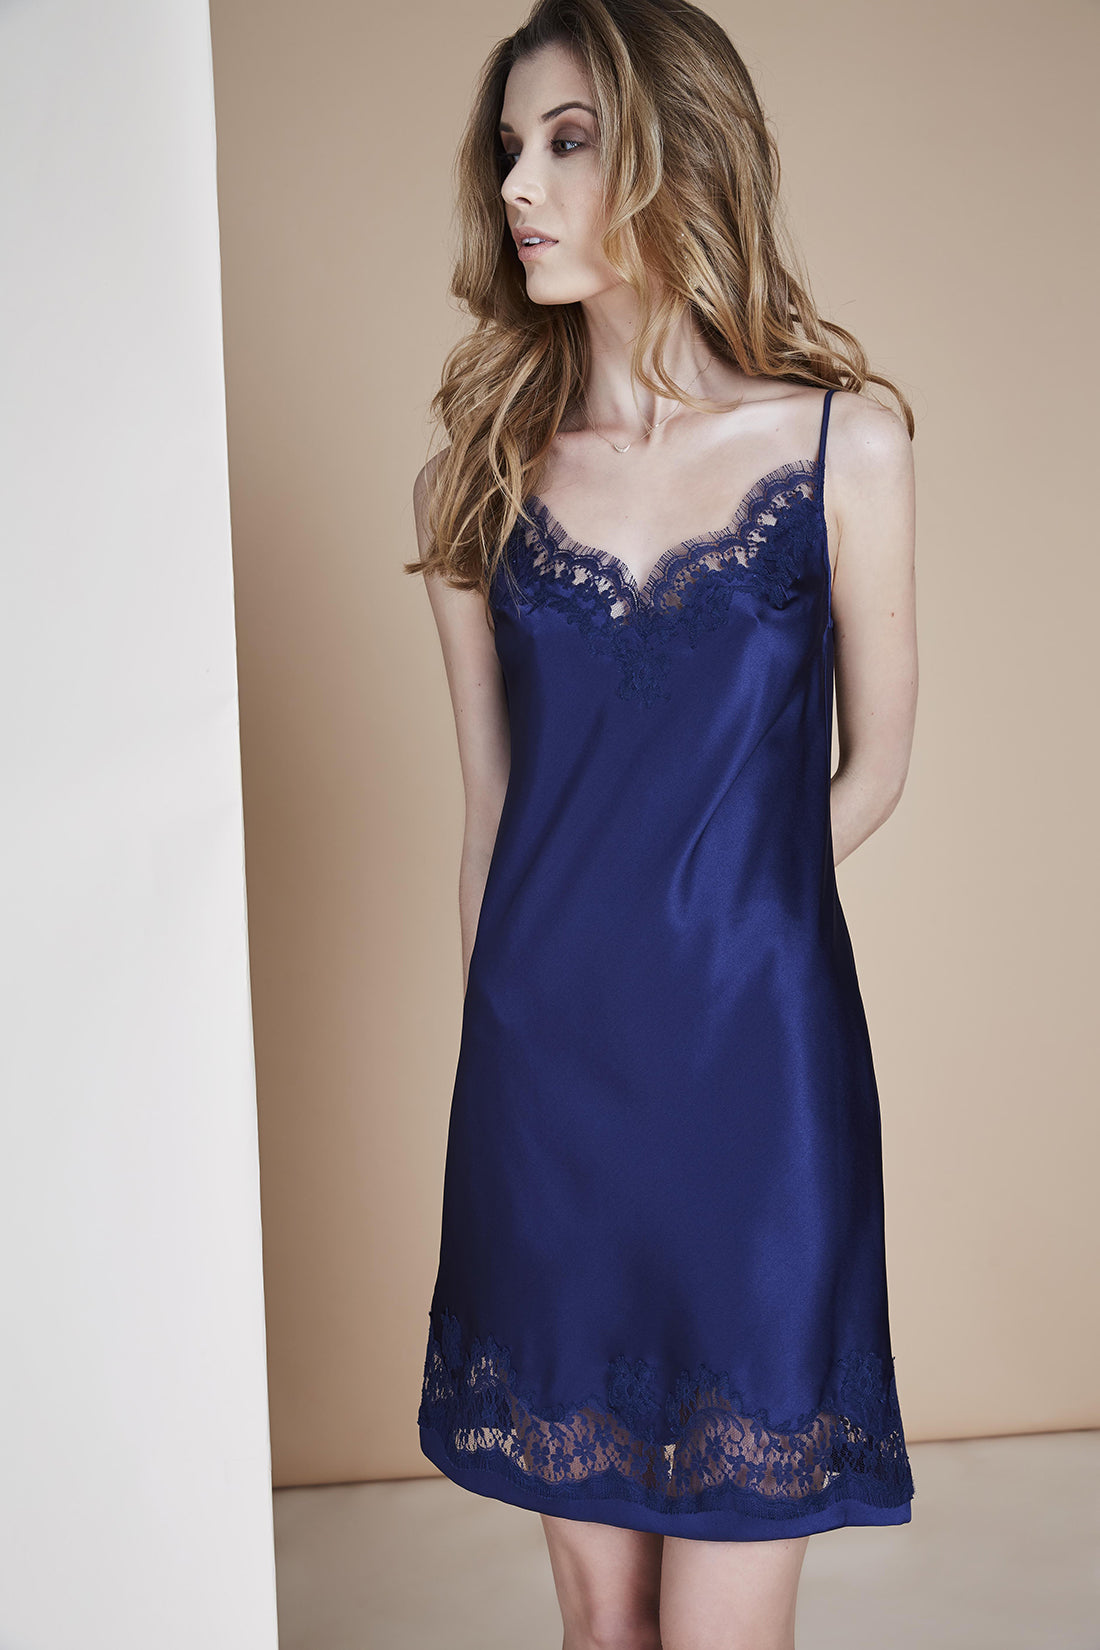 Macaroon Delights Midi Dress in Light Navy